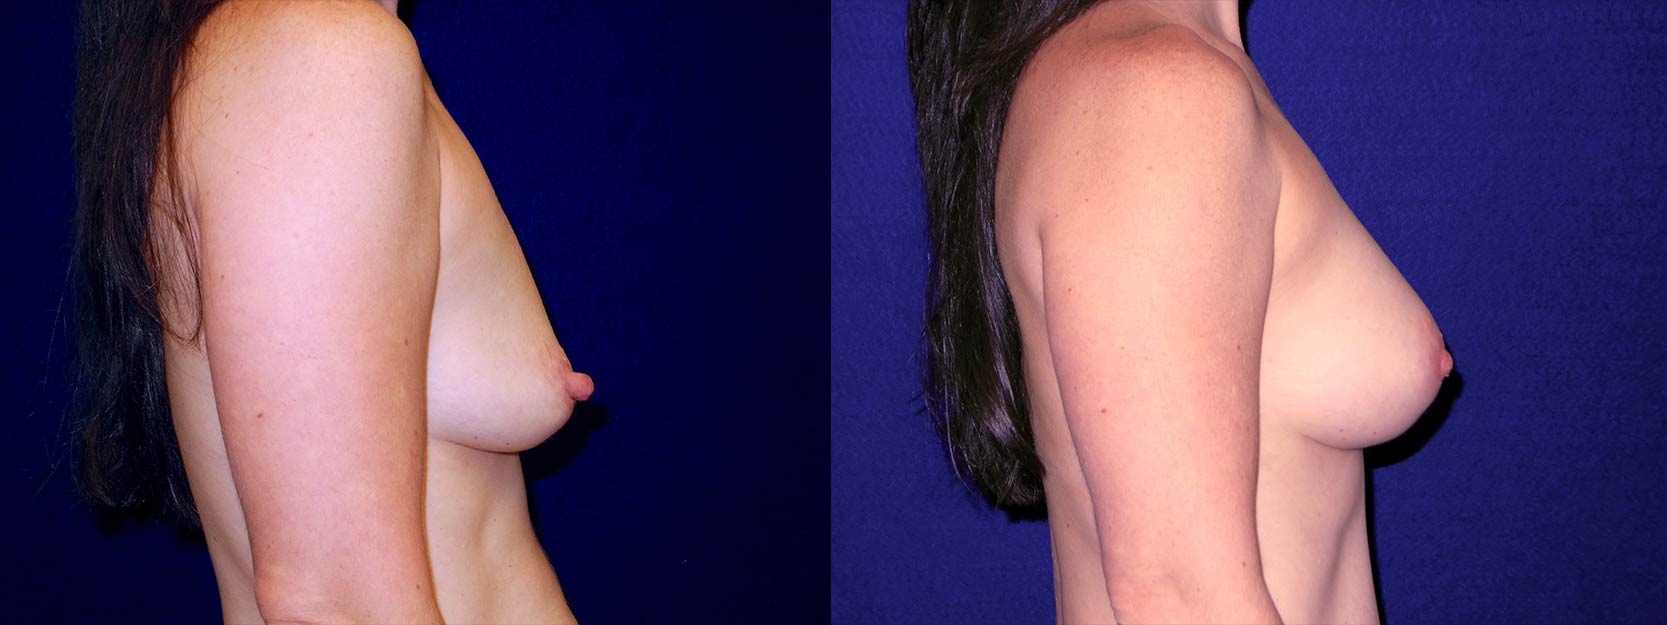 Right Profile View - Breast Augmentation After Pregnancy